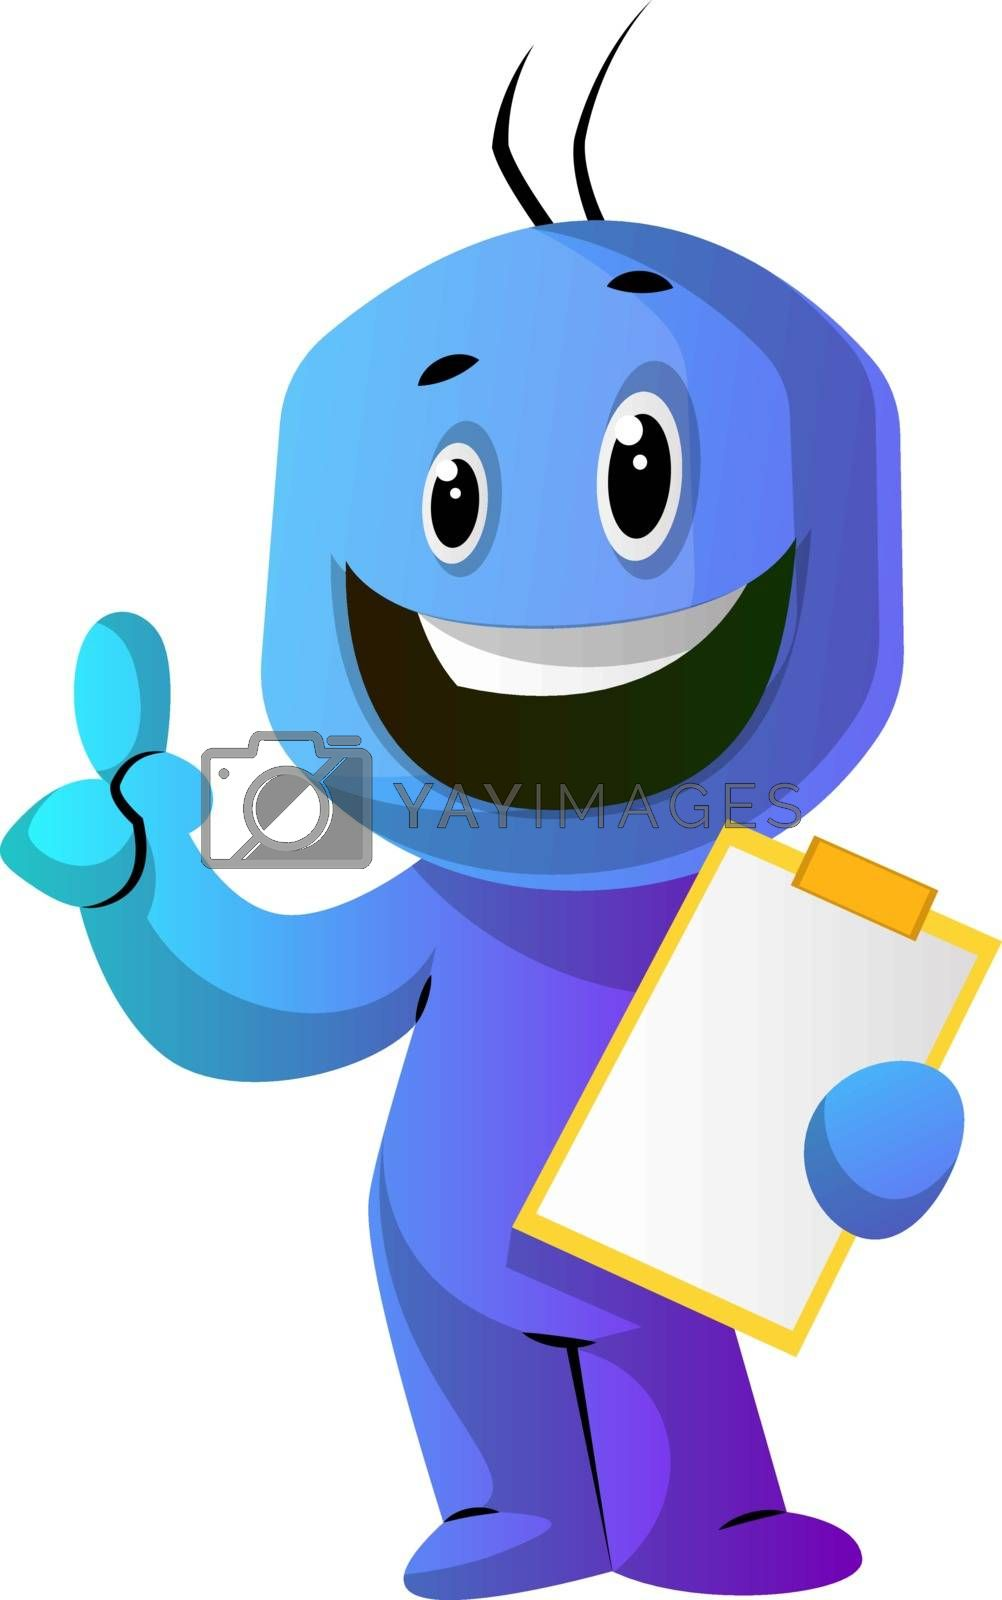 Royalty free image of Blue cartoon caracter with a thumb up and a notepad illustration by Morphart